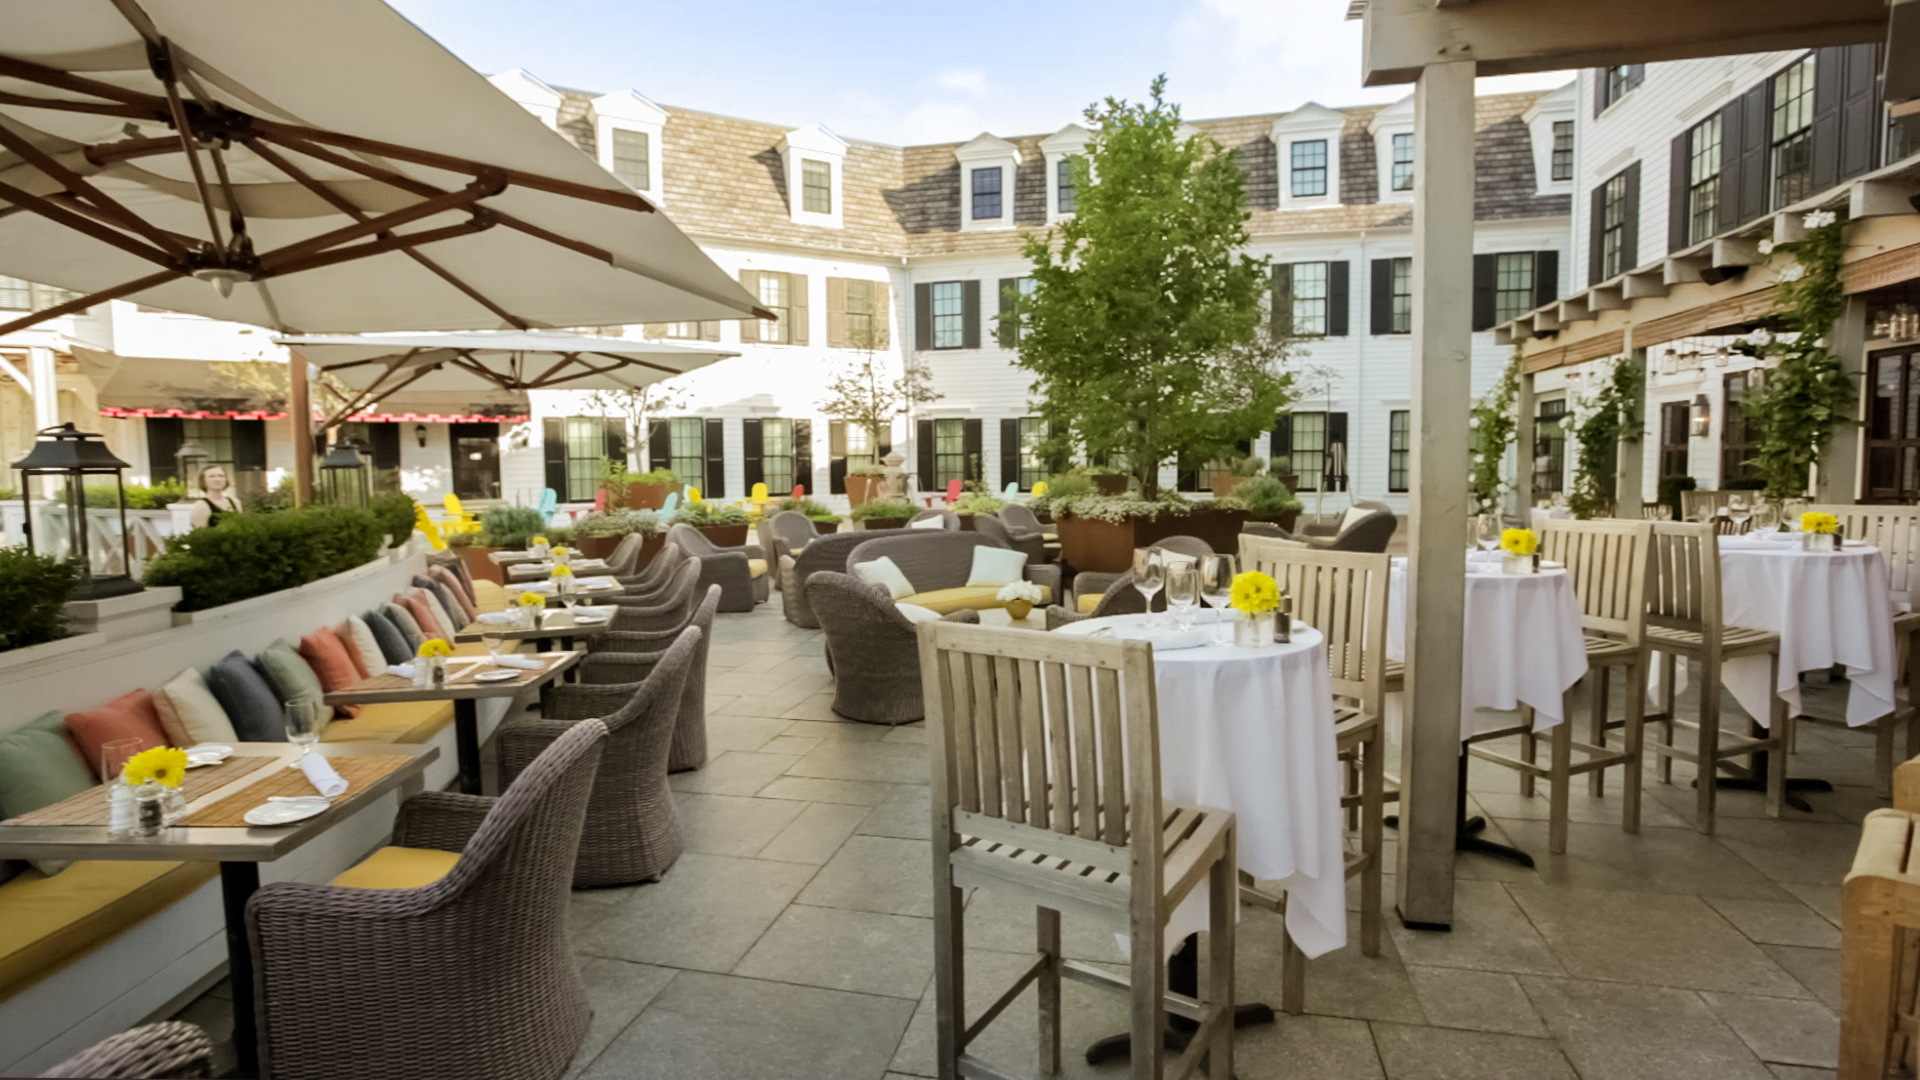 The delamar southport an intimate connecticut hotel thats big on new england charm everett potters travel report